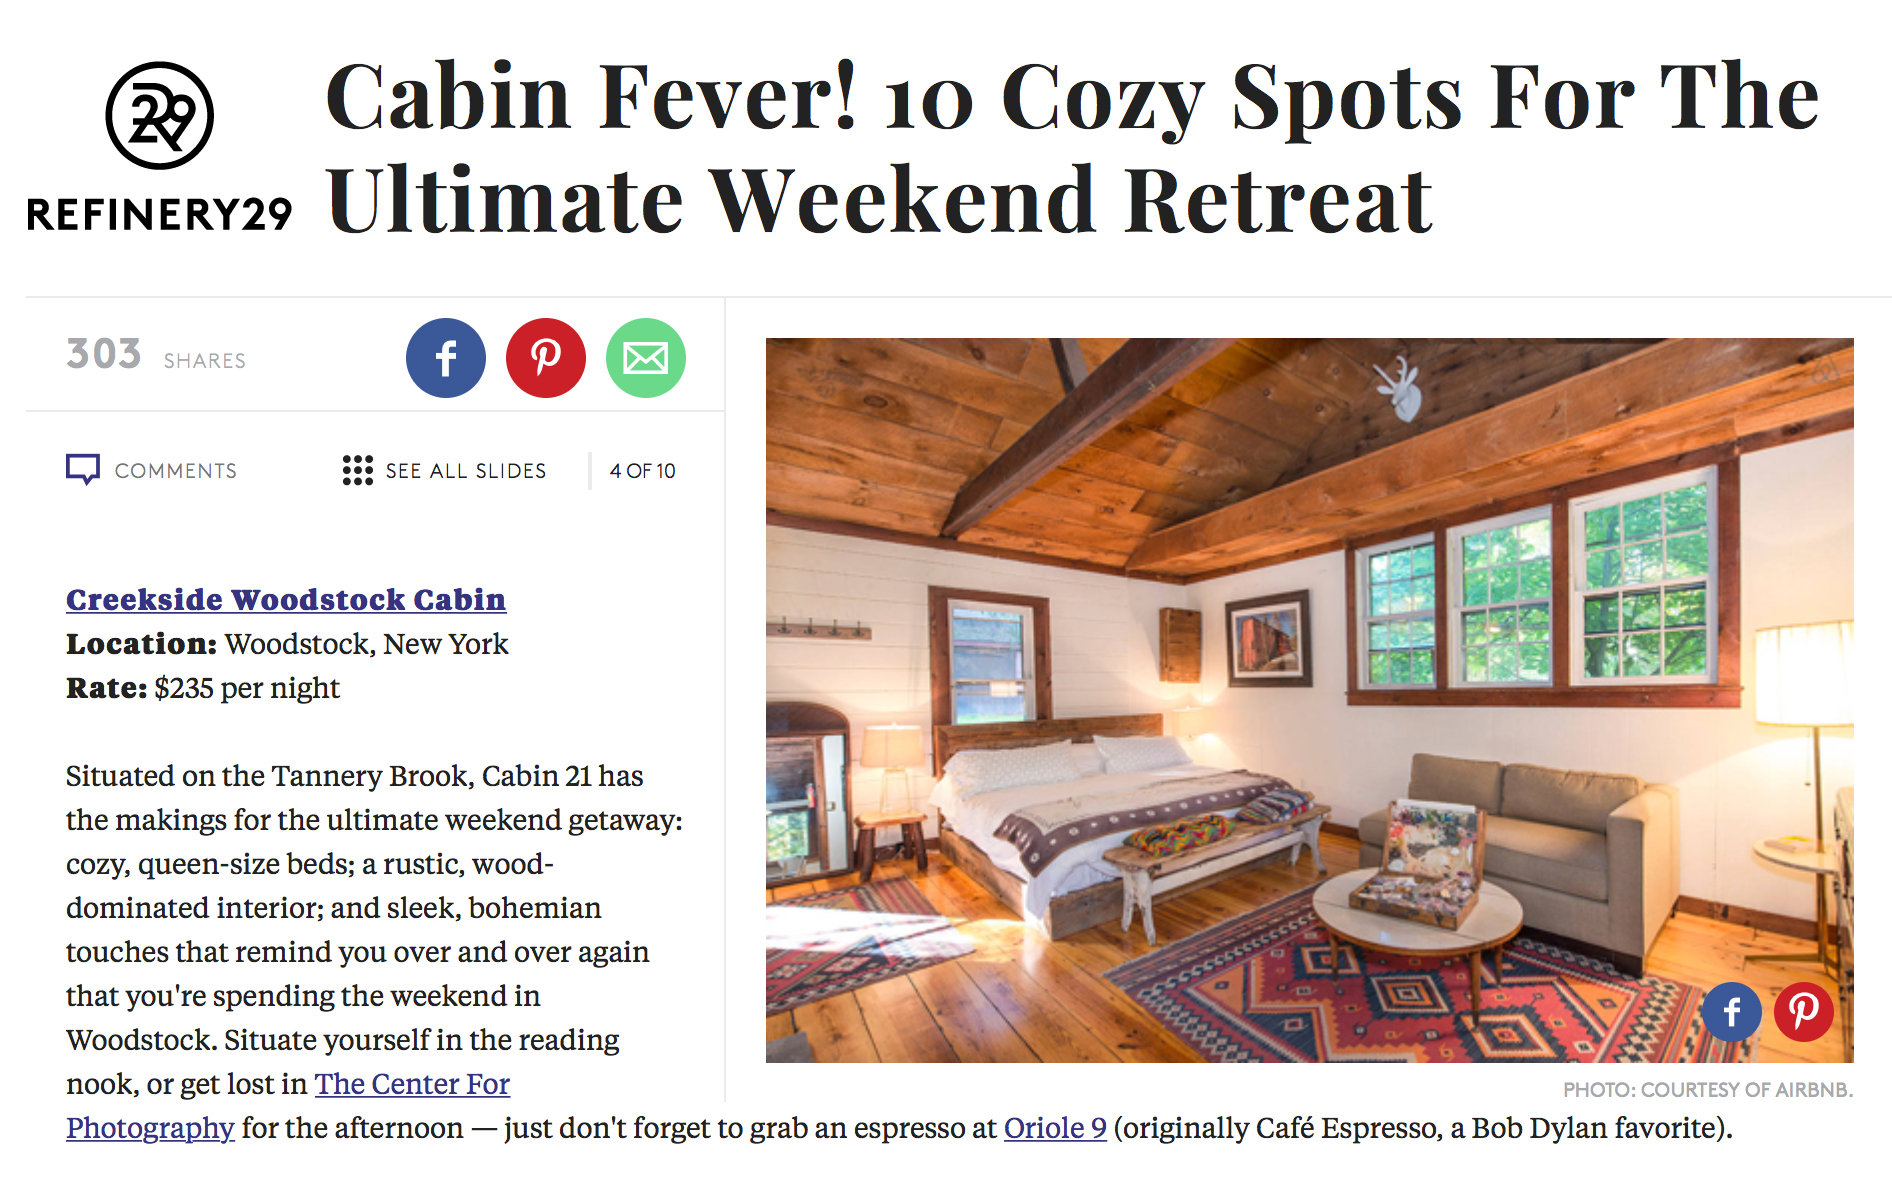 Refinery 29: Cabin Fever! 10 Cozy Spots For The Ultimate Weekend Retreat